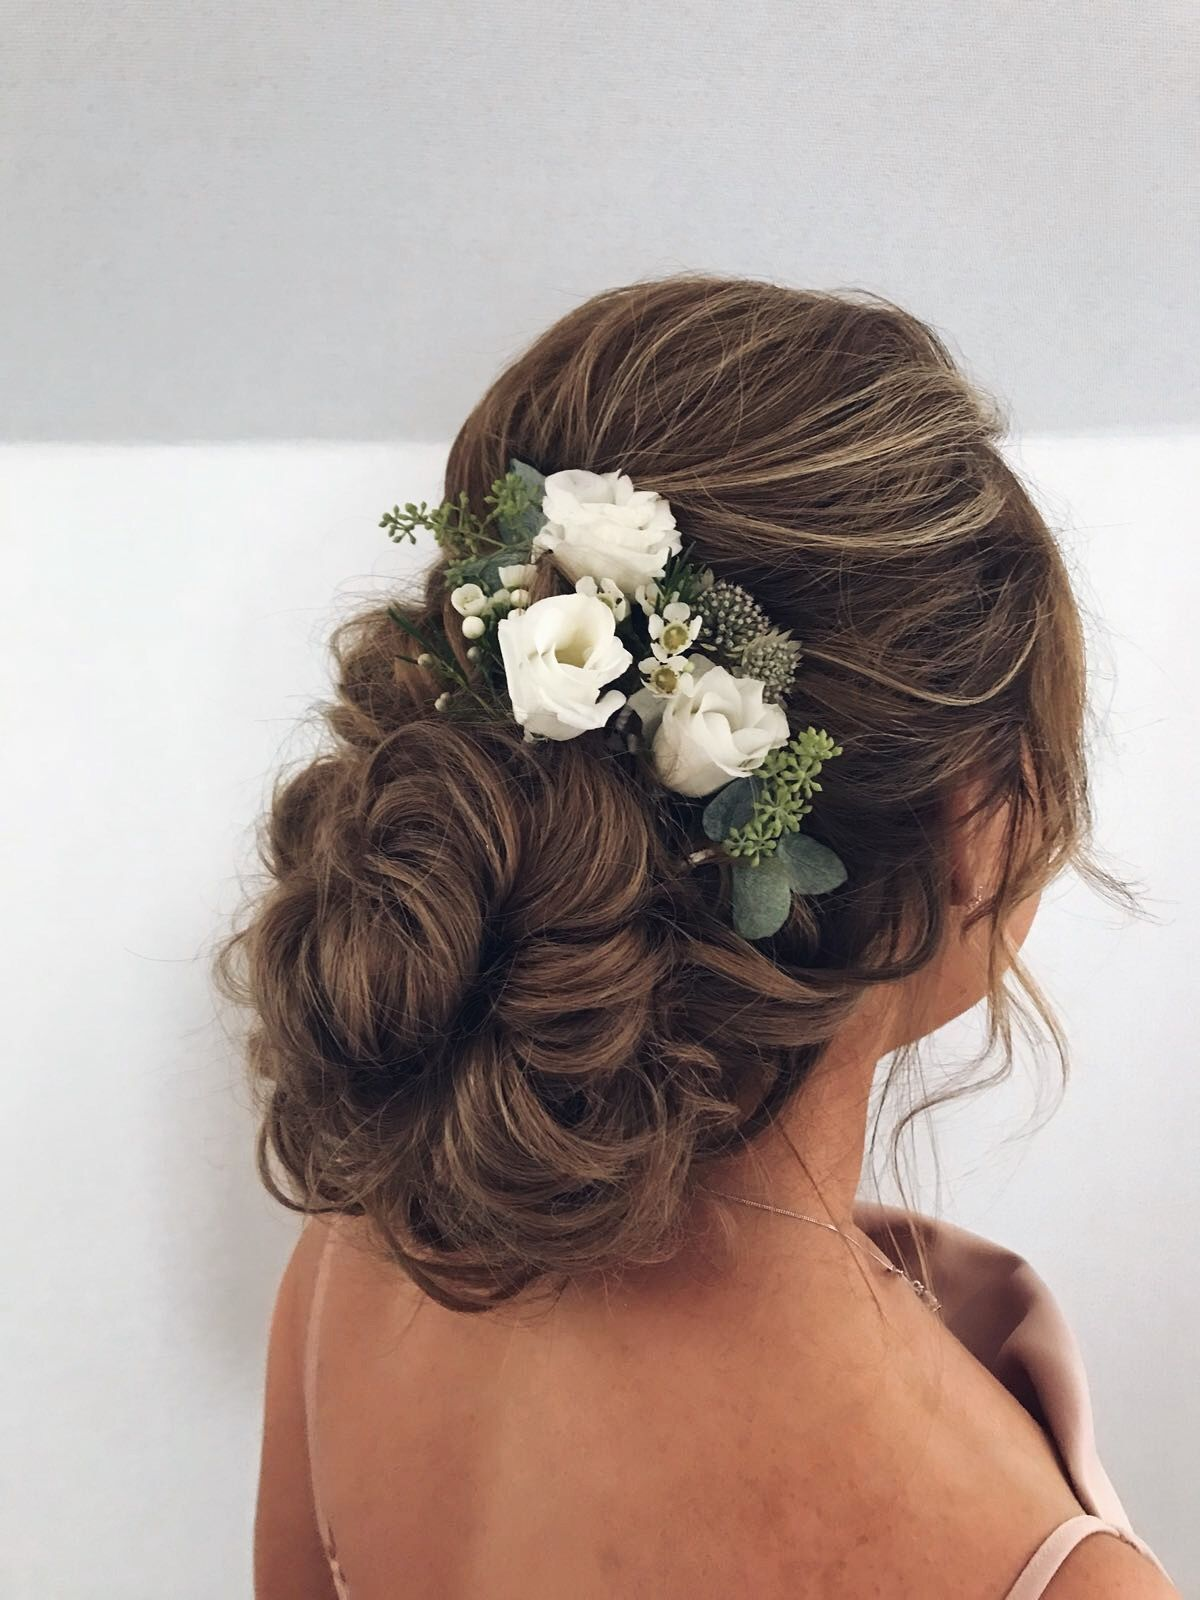 classic bridal hair style for a traditional bride. fresh